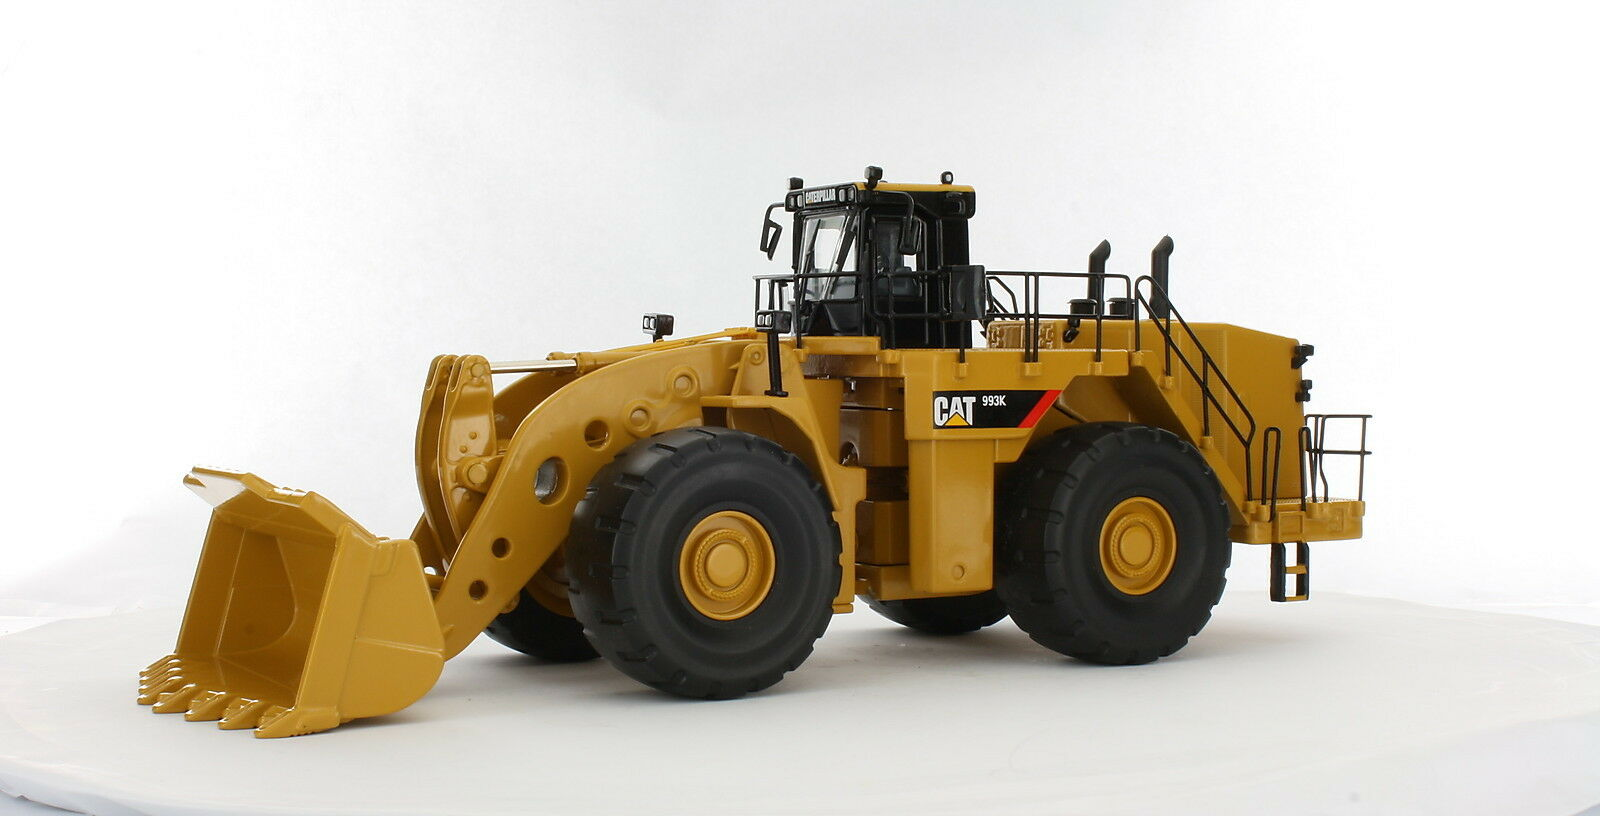 Caterpillar 1 50 scale Cat 993K Wheel Loader Diecast replica Norscot 55229